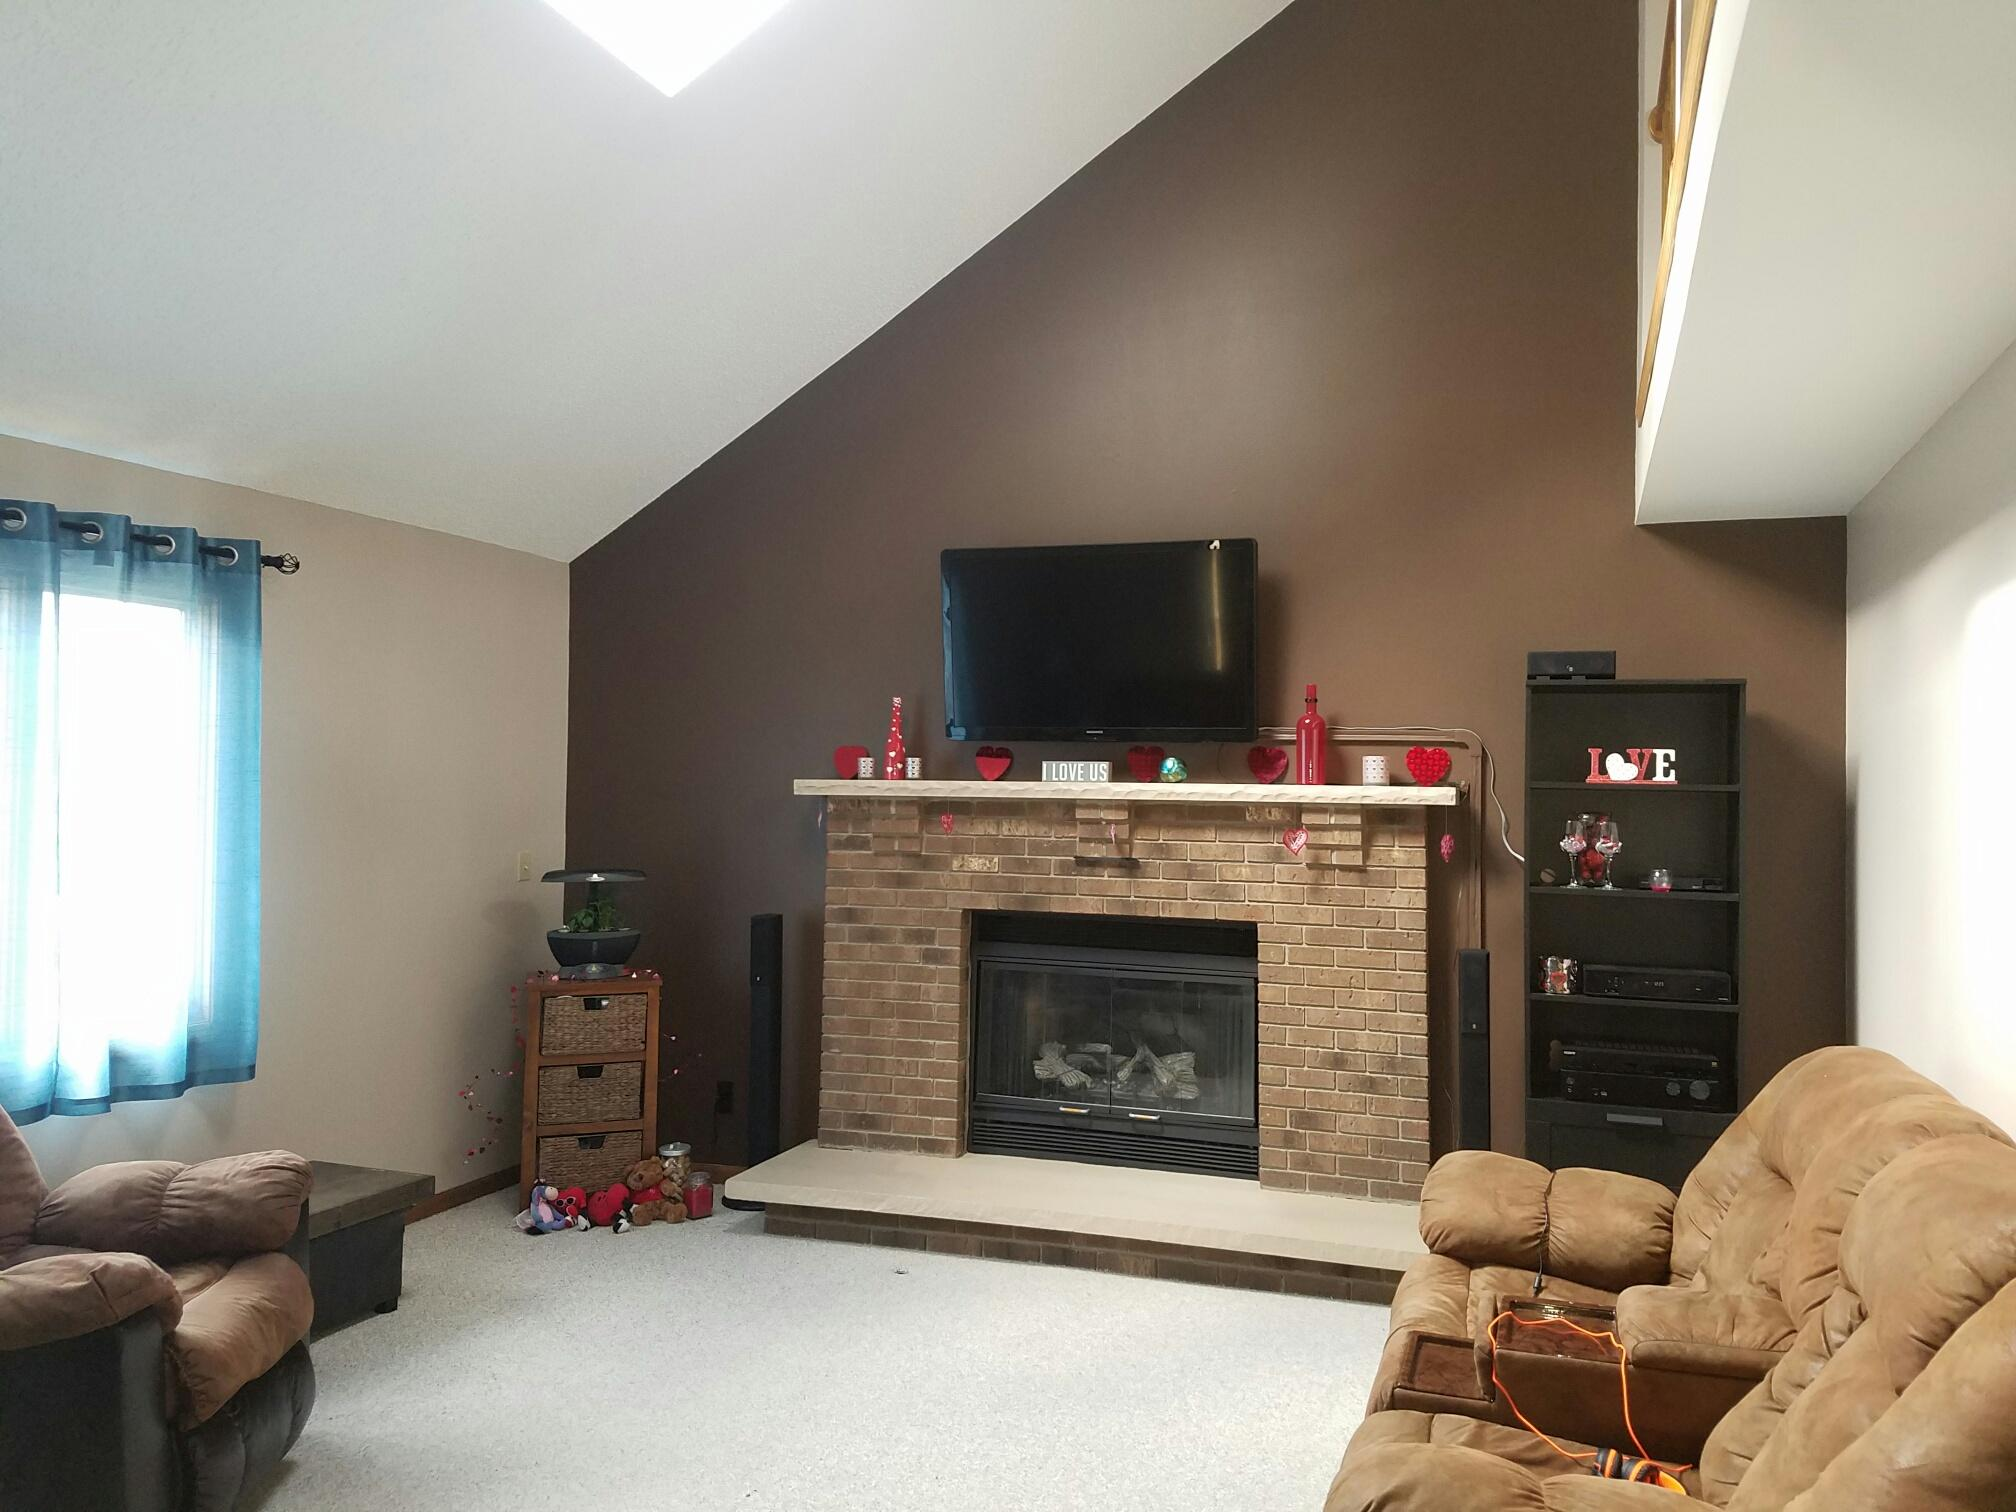 interior residential painting services - Buffalo, NY